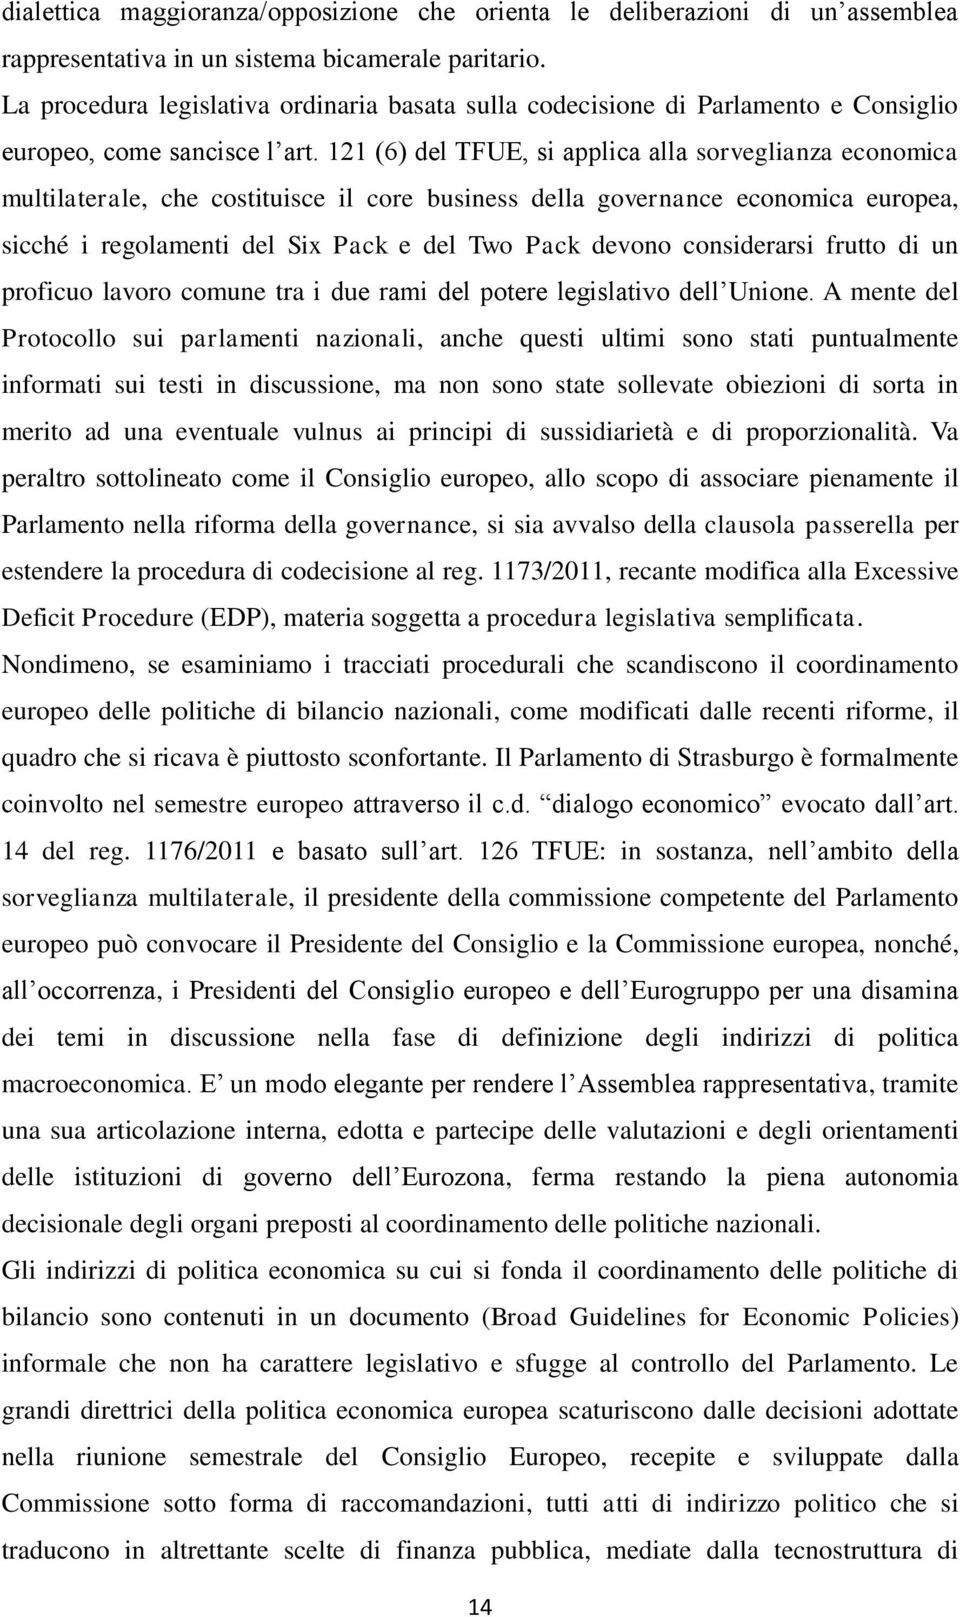 121 (6) del TFUE, si applica alla sorveglianza economica multilaterale, che costituisce il core business della governance economica europea, sicché i regolamenti del Six Pack e del Two Pack devono